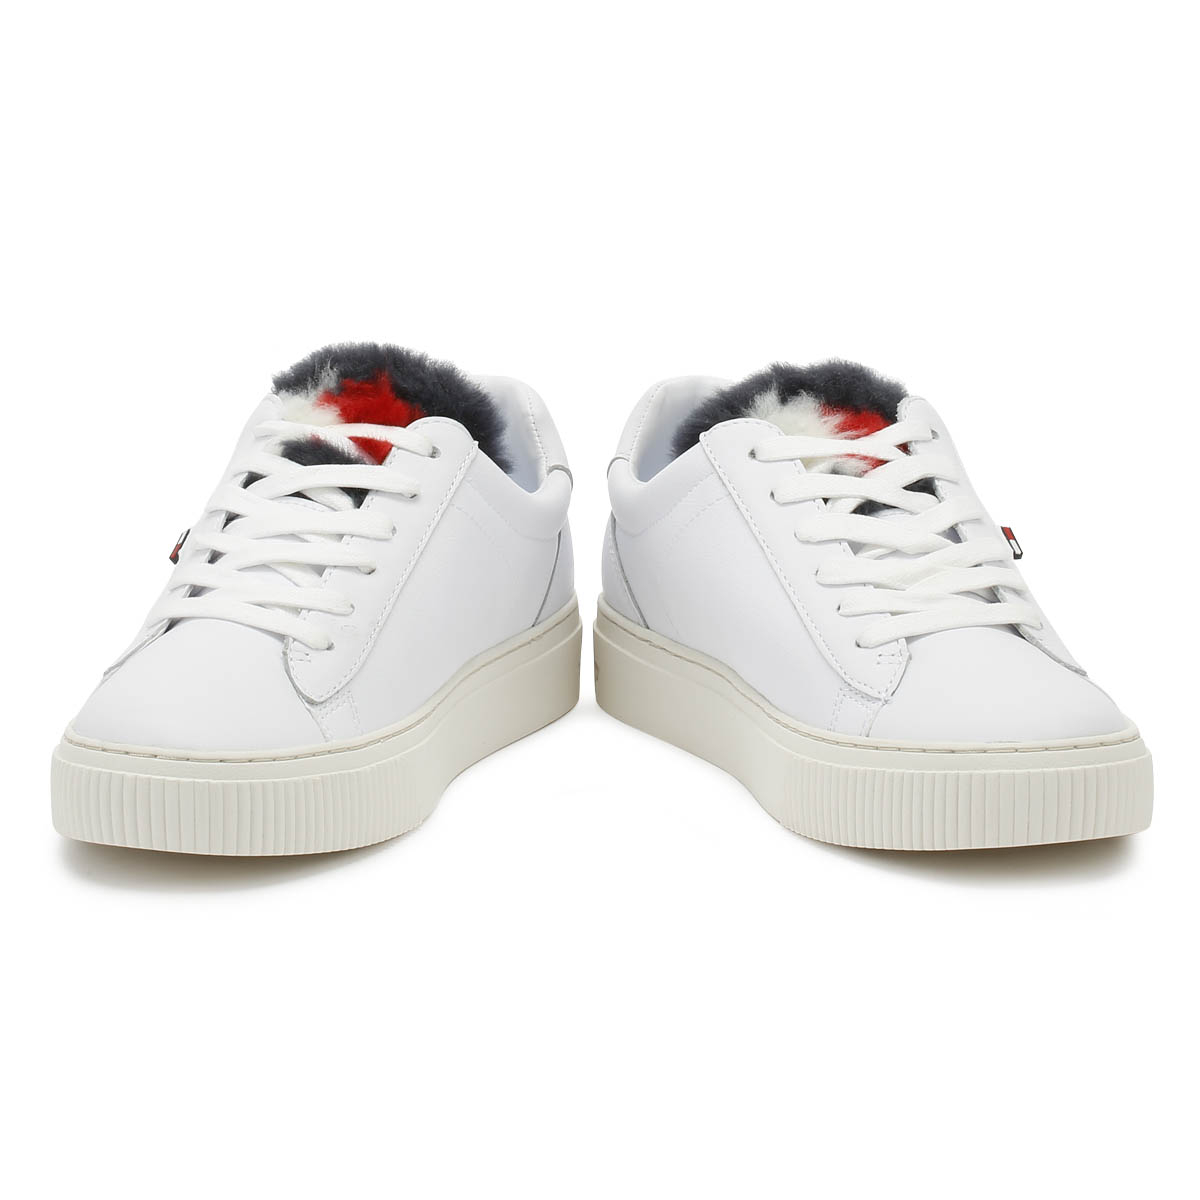 Tommy Hilfiger Damenschuhe Trainers Weiß Casual Funny Fur Star Sport Casual Weiß Schuhes e95010